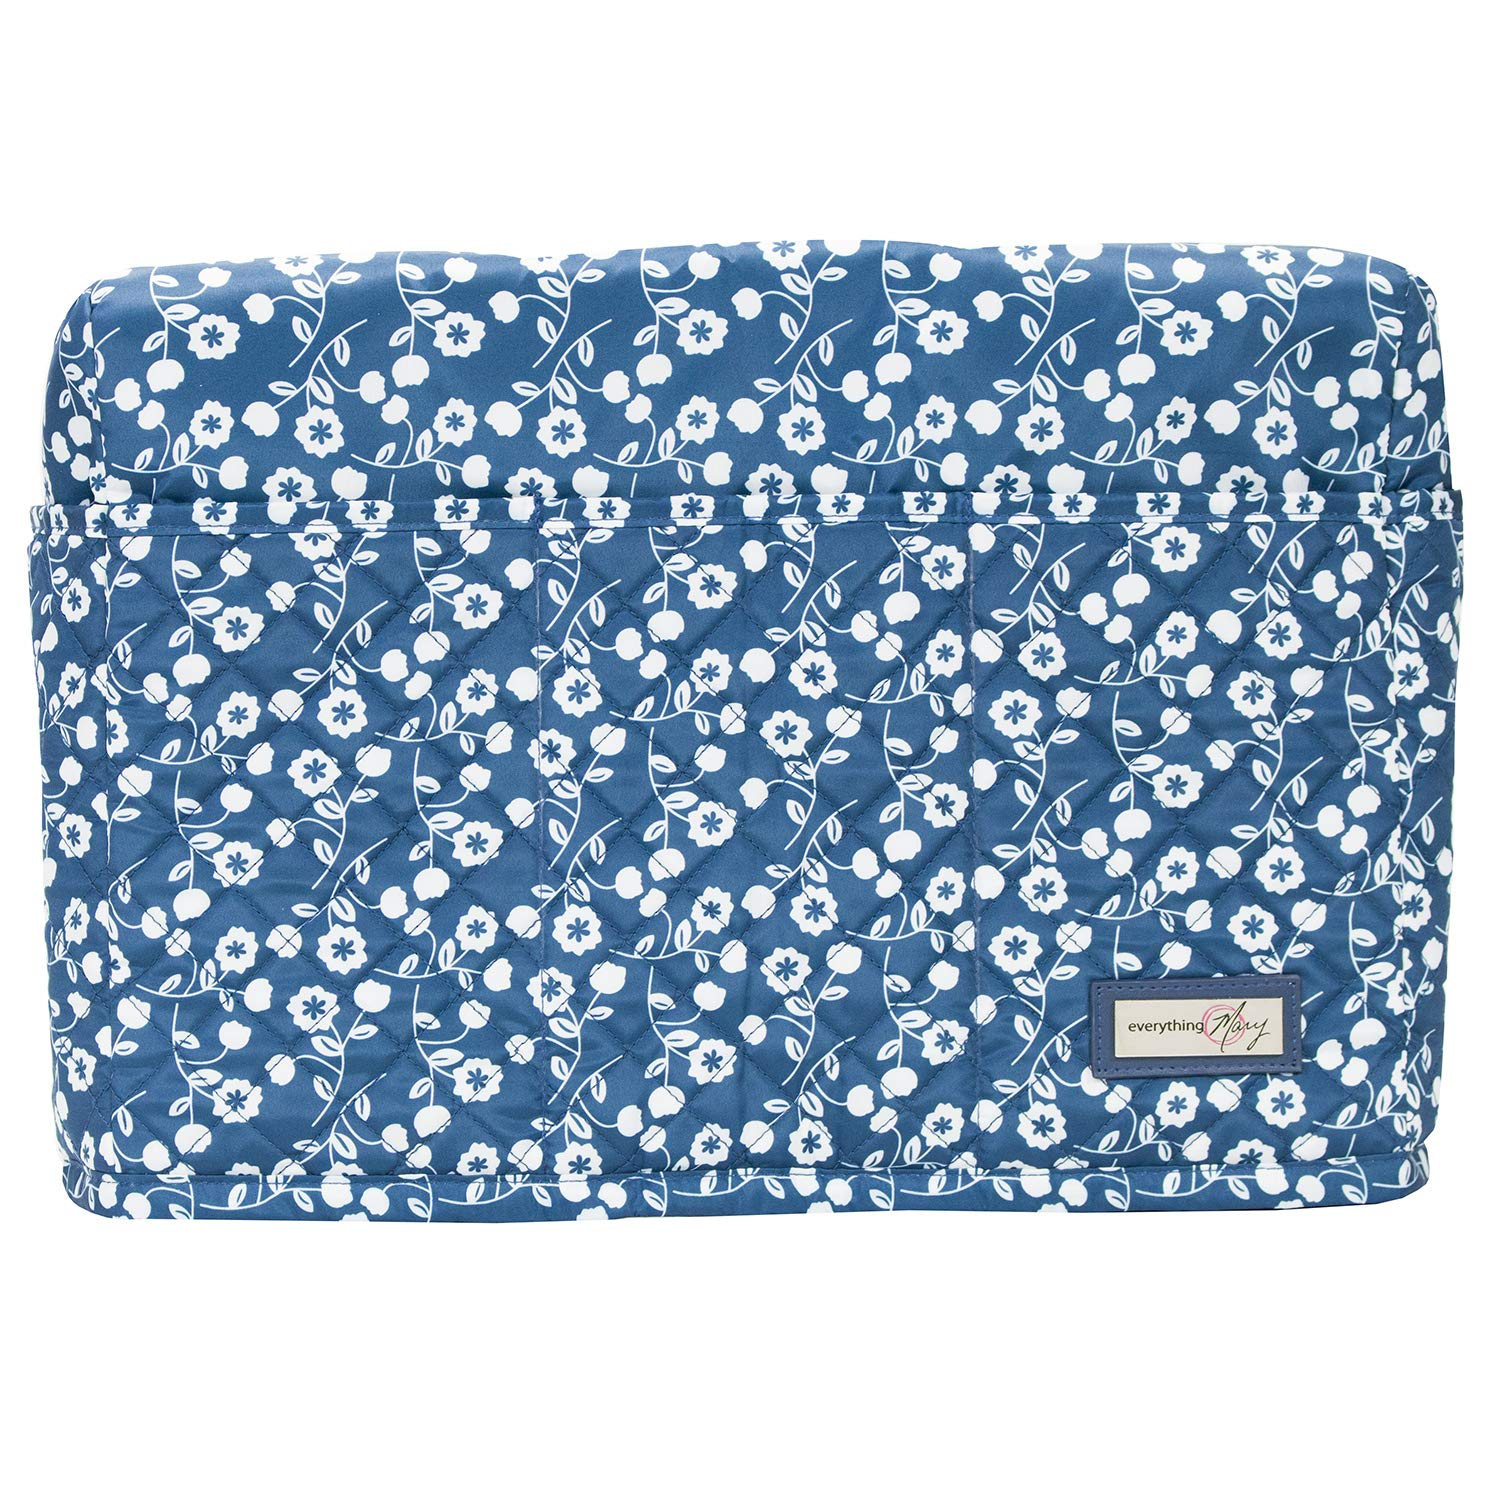 Collapsible with Storage Pocket Dust Cover Protector That Fits Most Standard Brother /& Singer Machines Everything Mary Grey Quilted Sewing Machine Cover